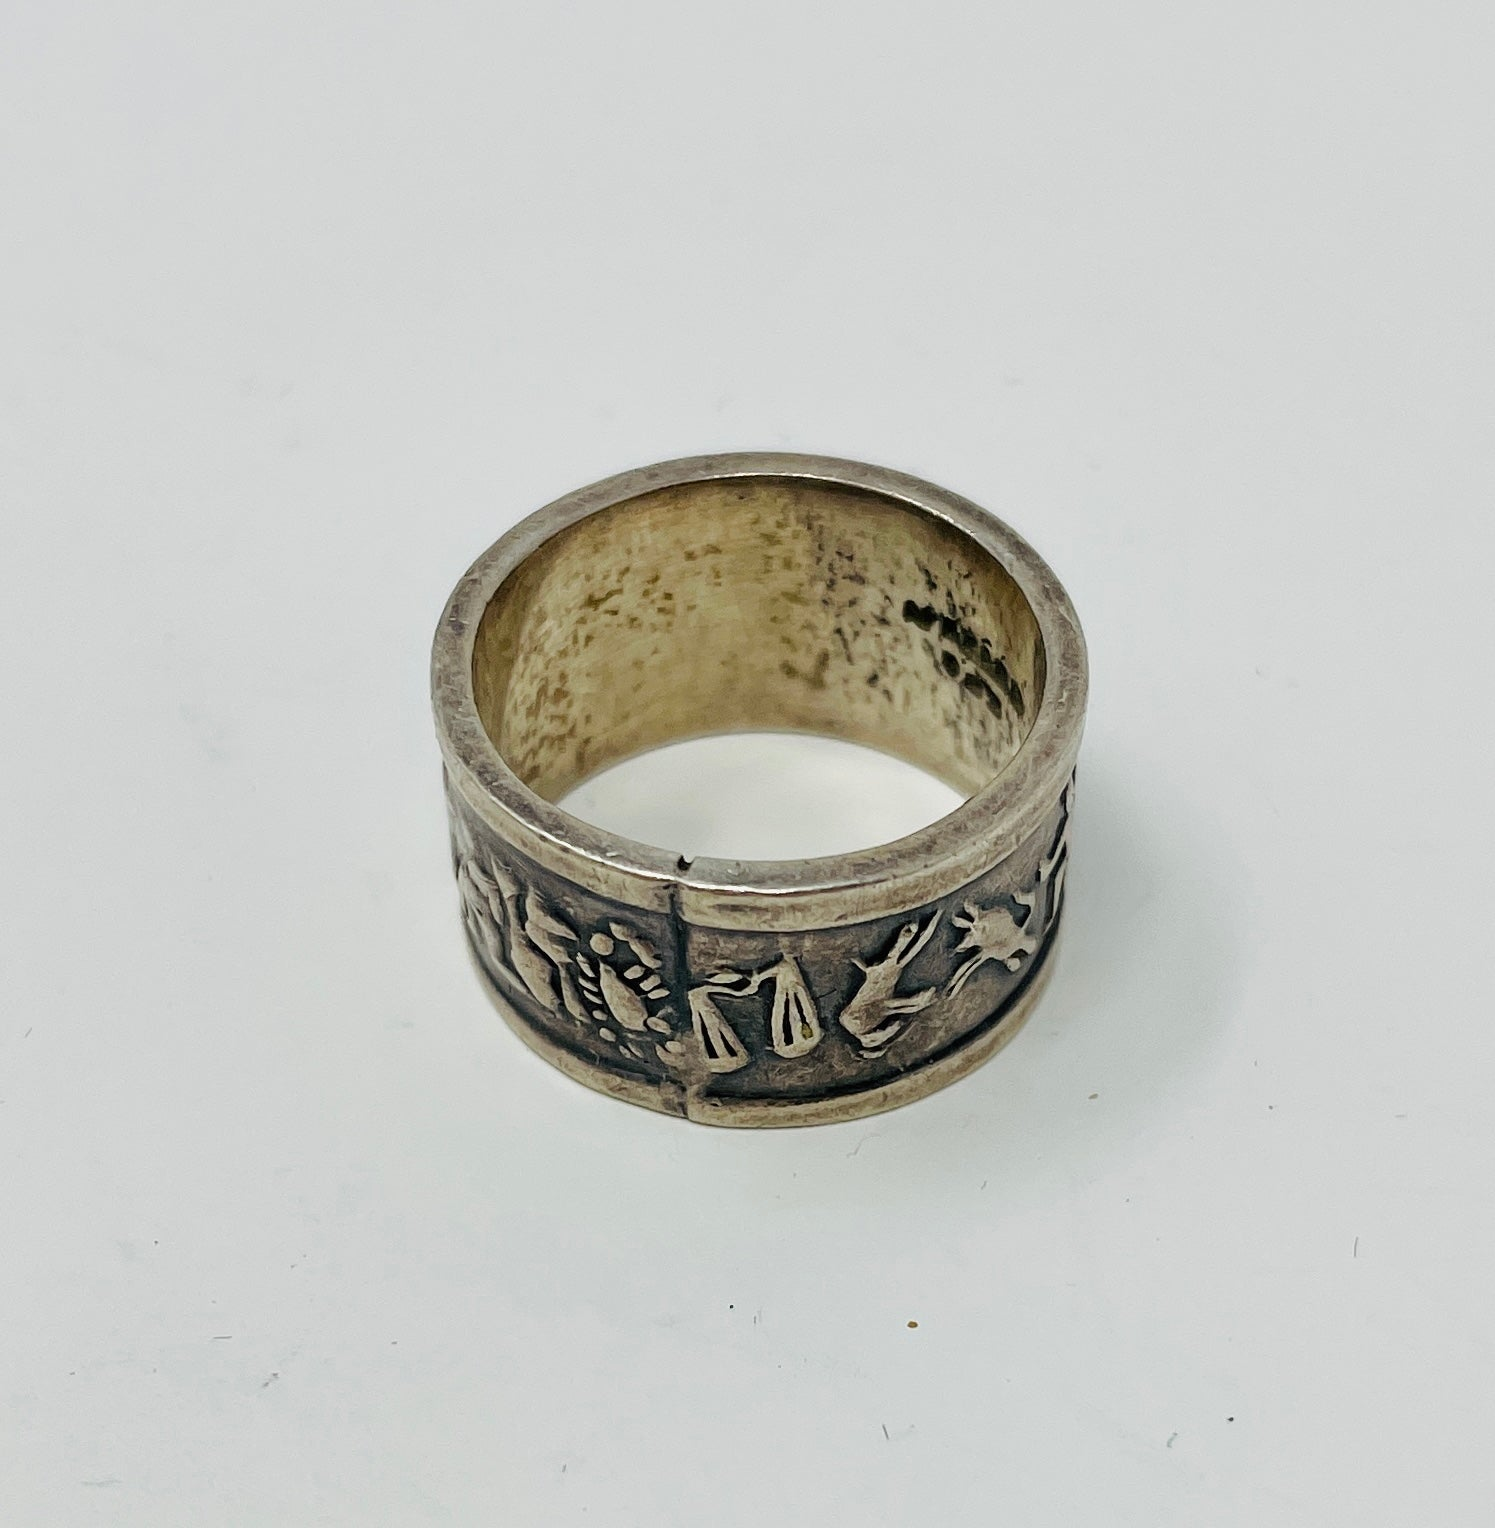 Vintage Astrological Ring